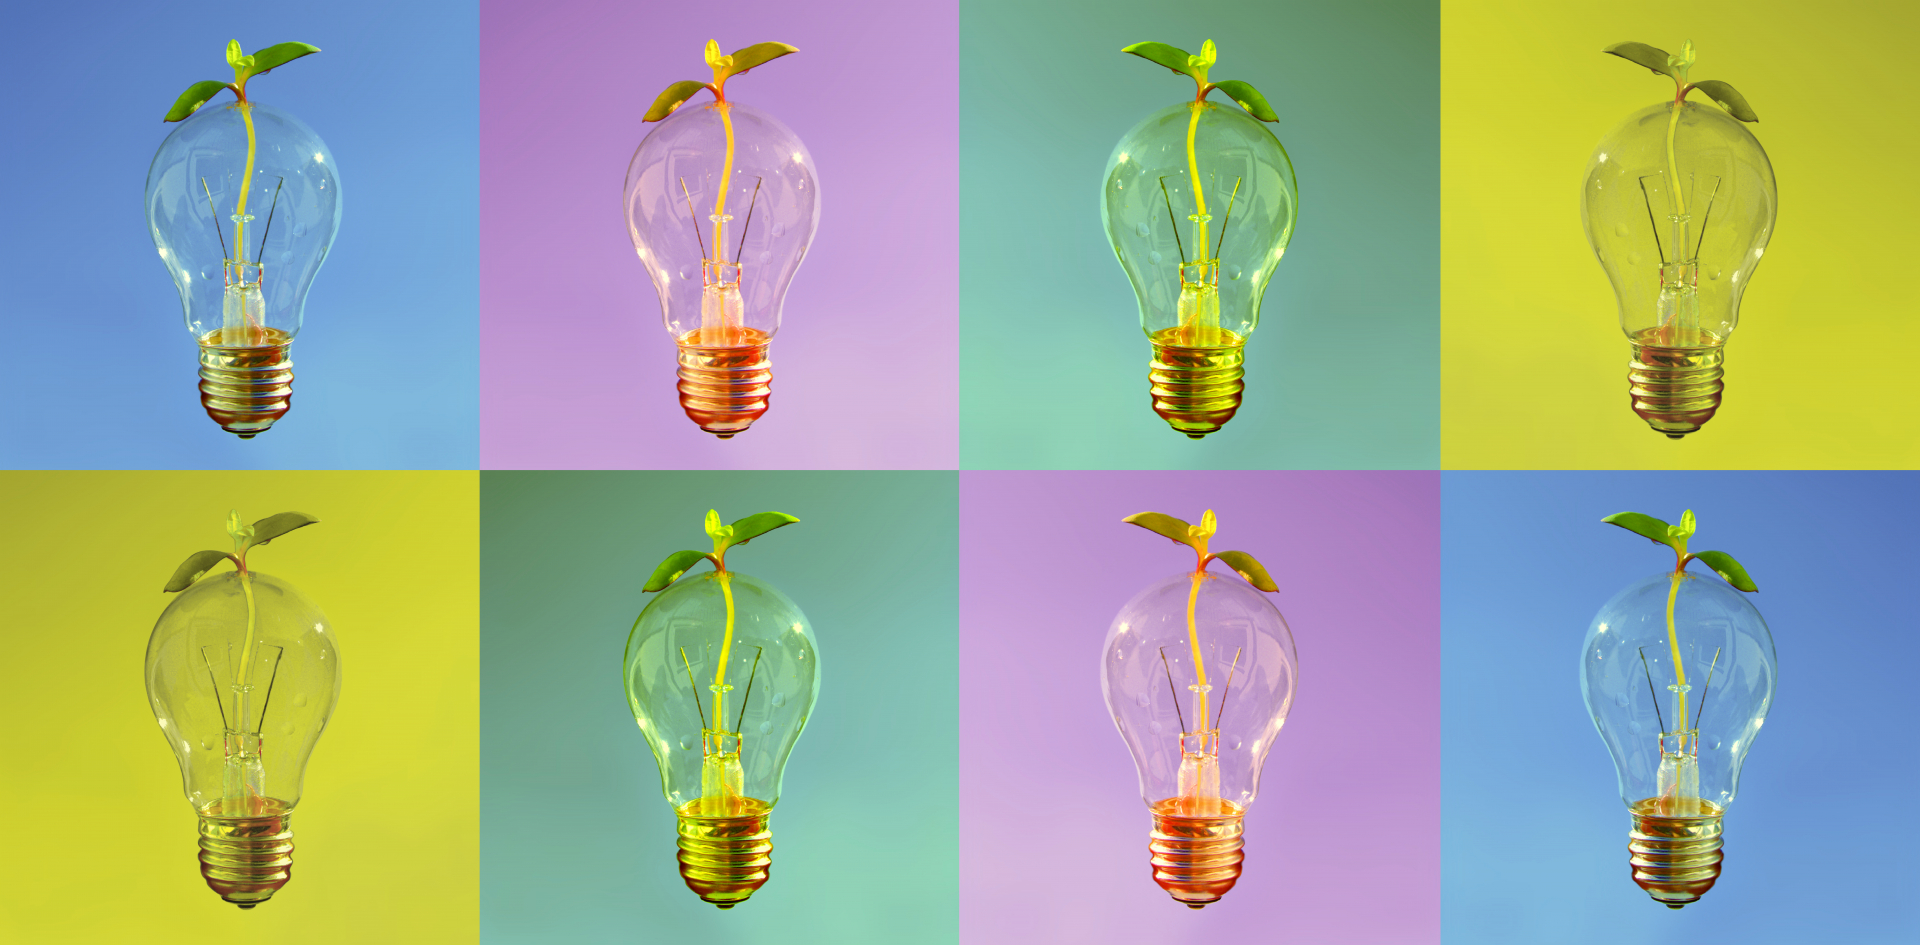 30943531-colorful-lightbulbs-in-rows-as-design-object-for-web.jpg